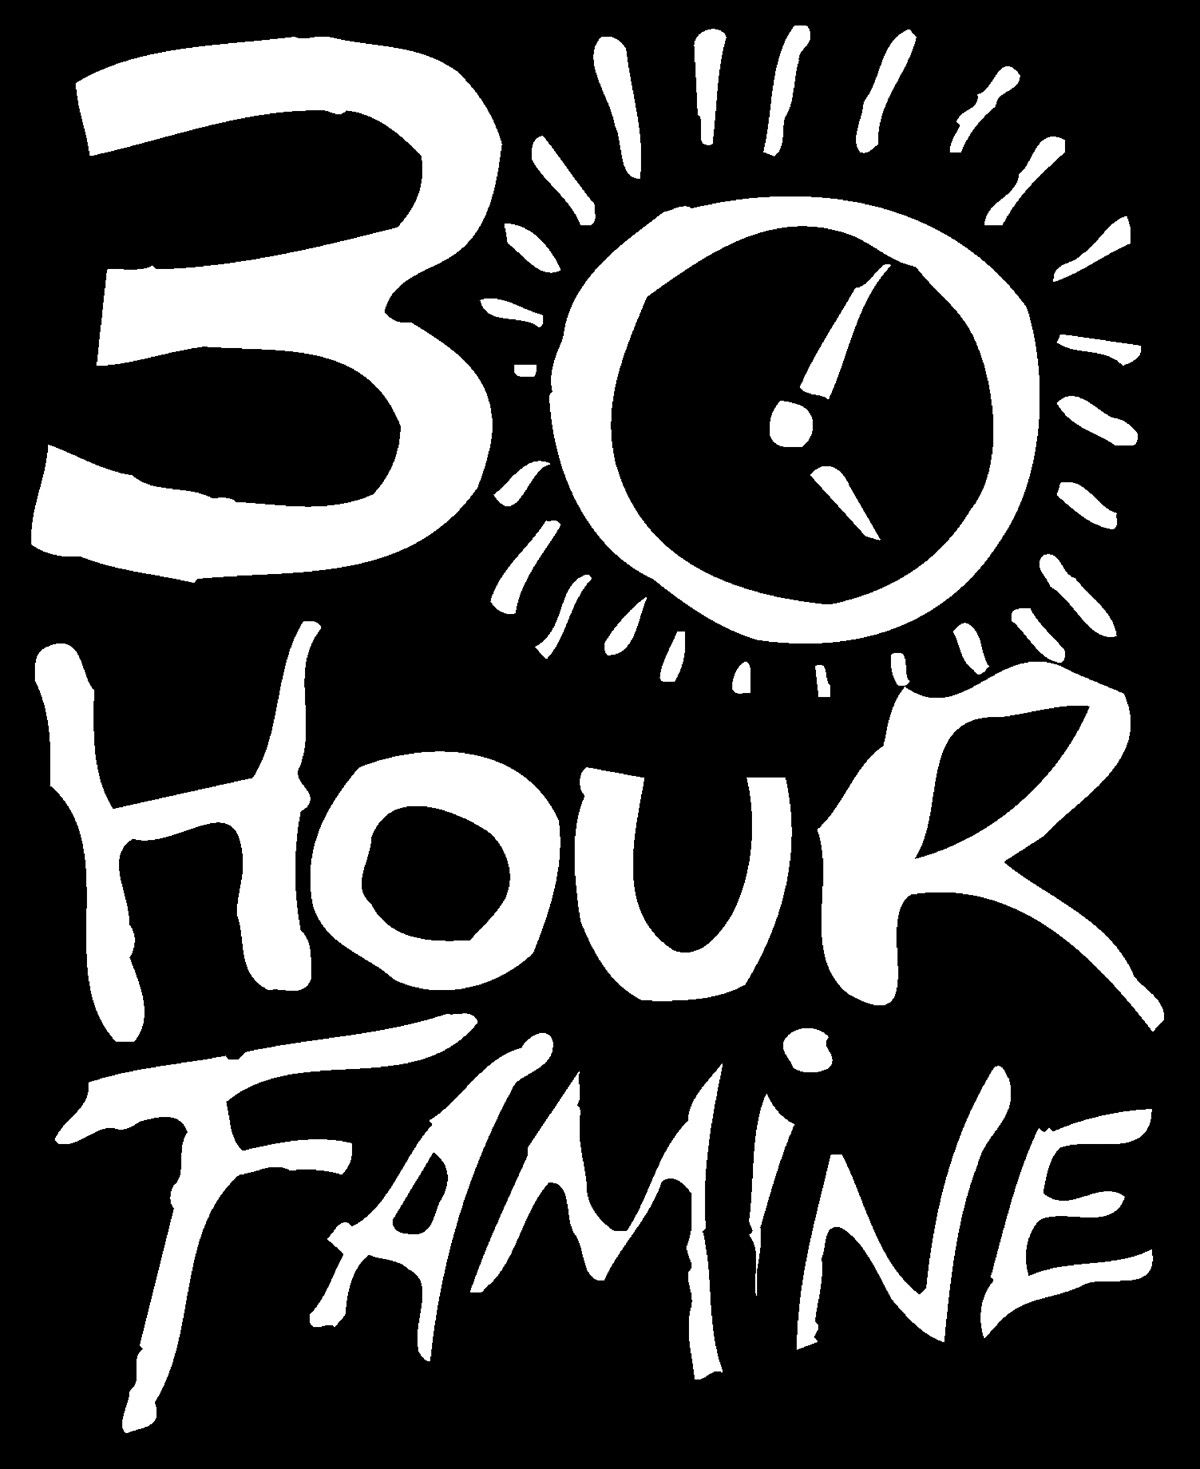 30 Hour Famine Social Media Outreach